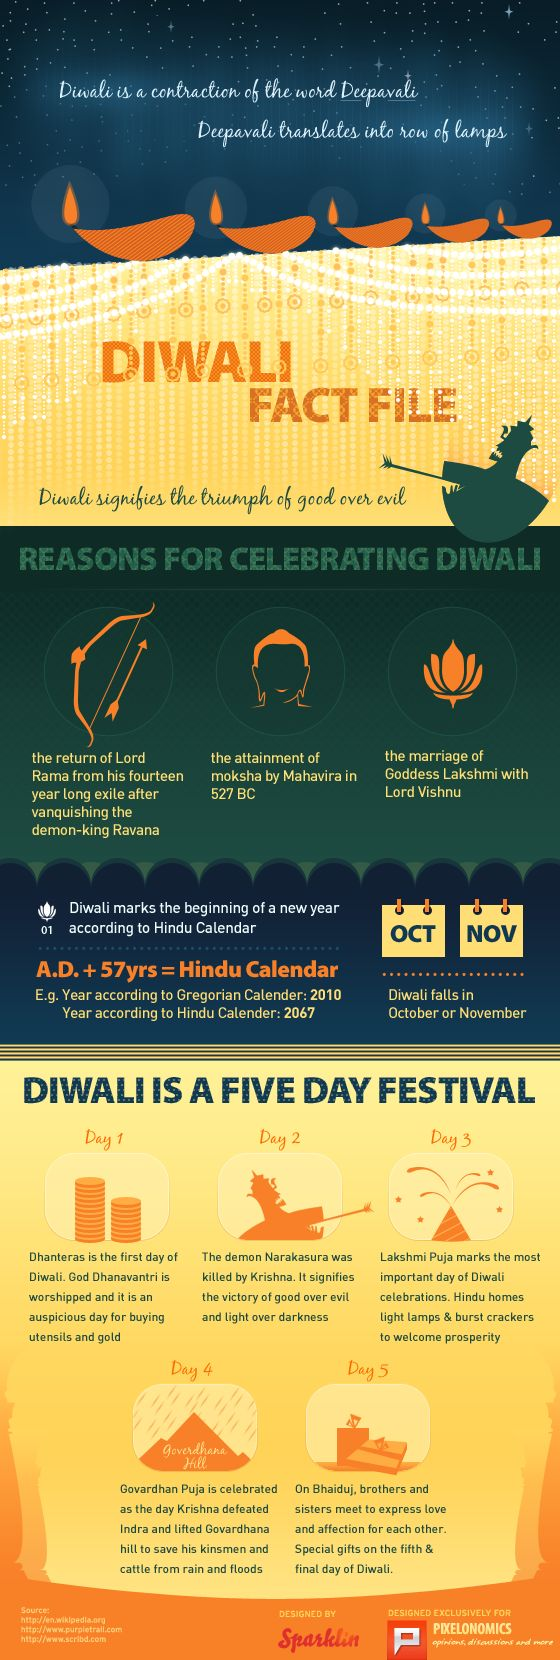 Diwali Facts Files